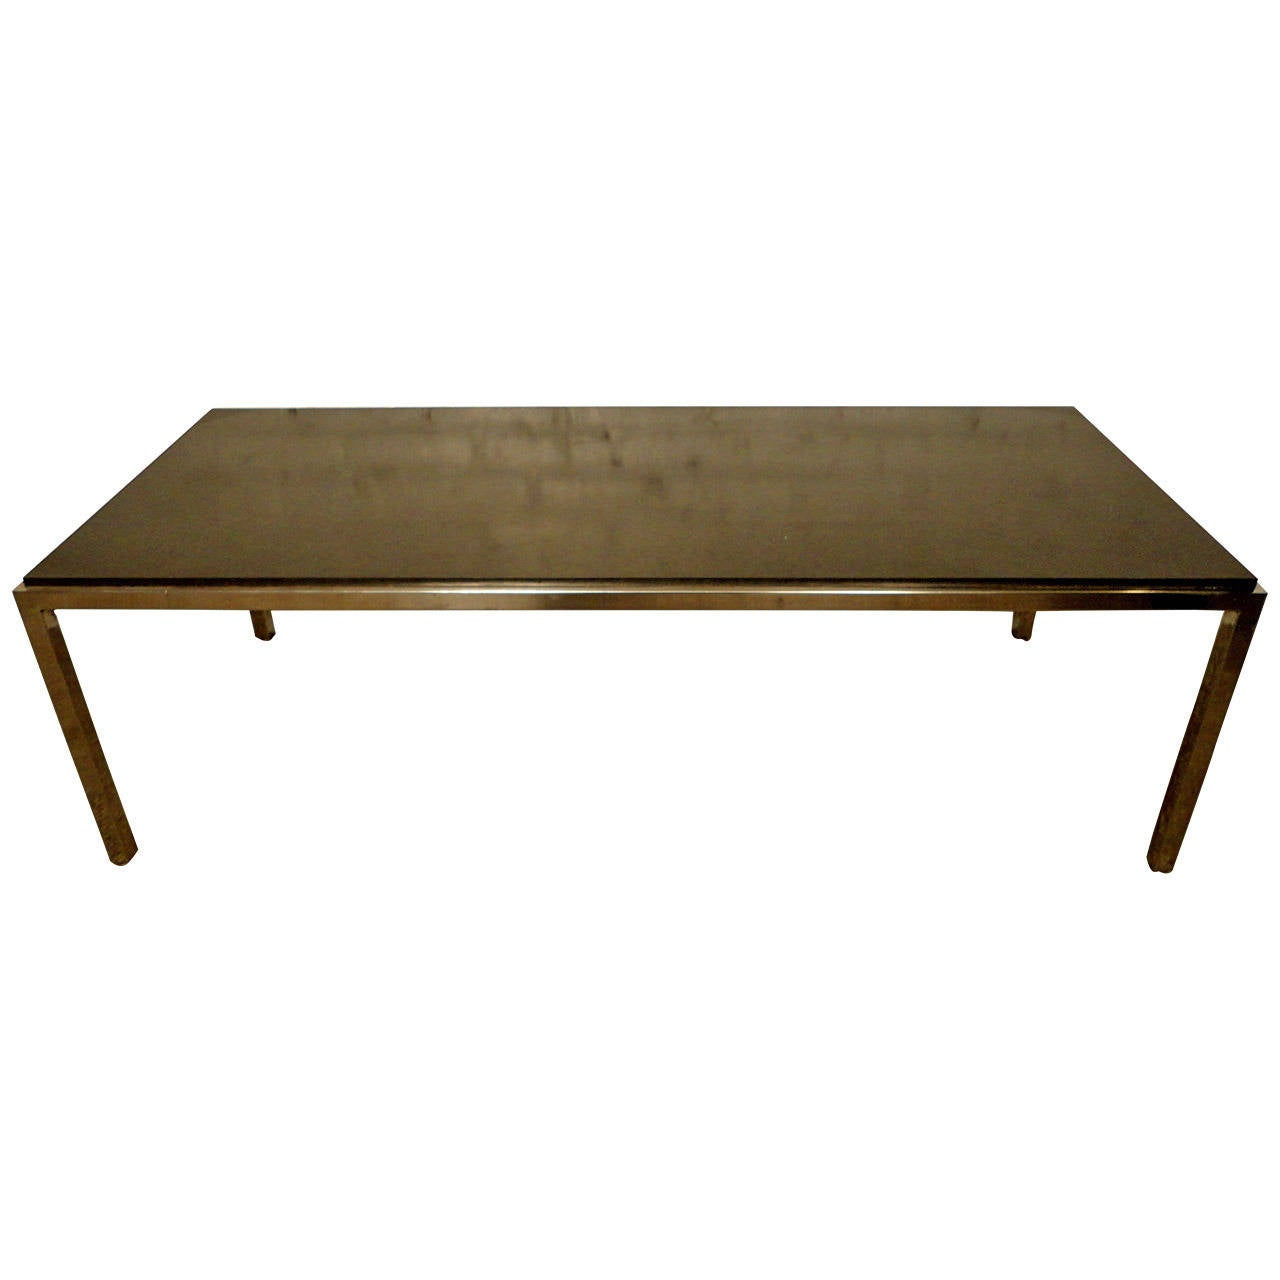 Sleek Mid Century Chrome And Black Top Coffee Table By Directional